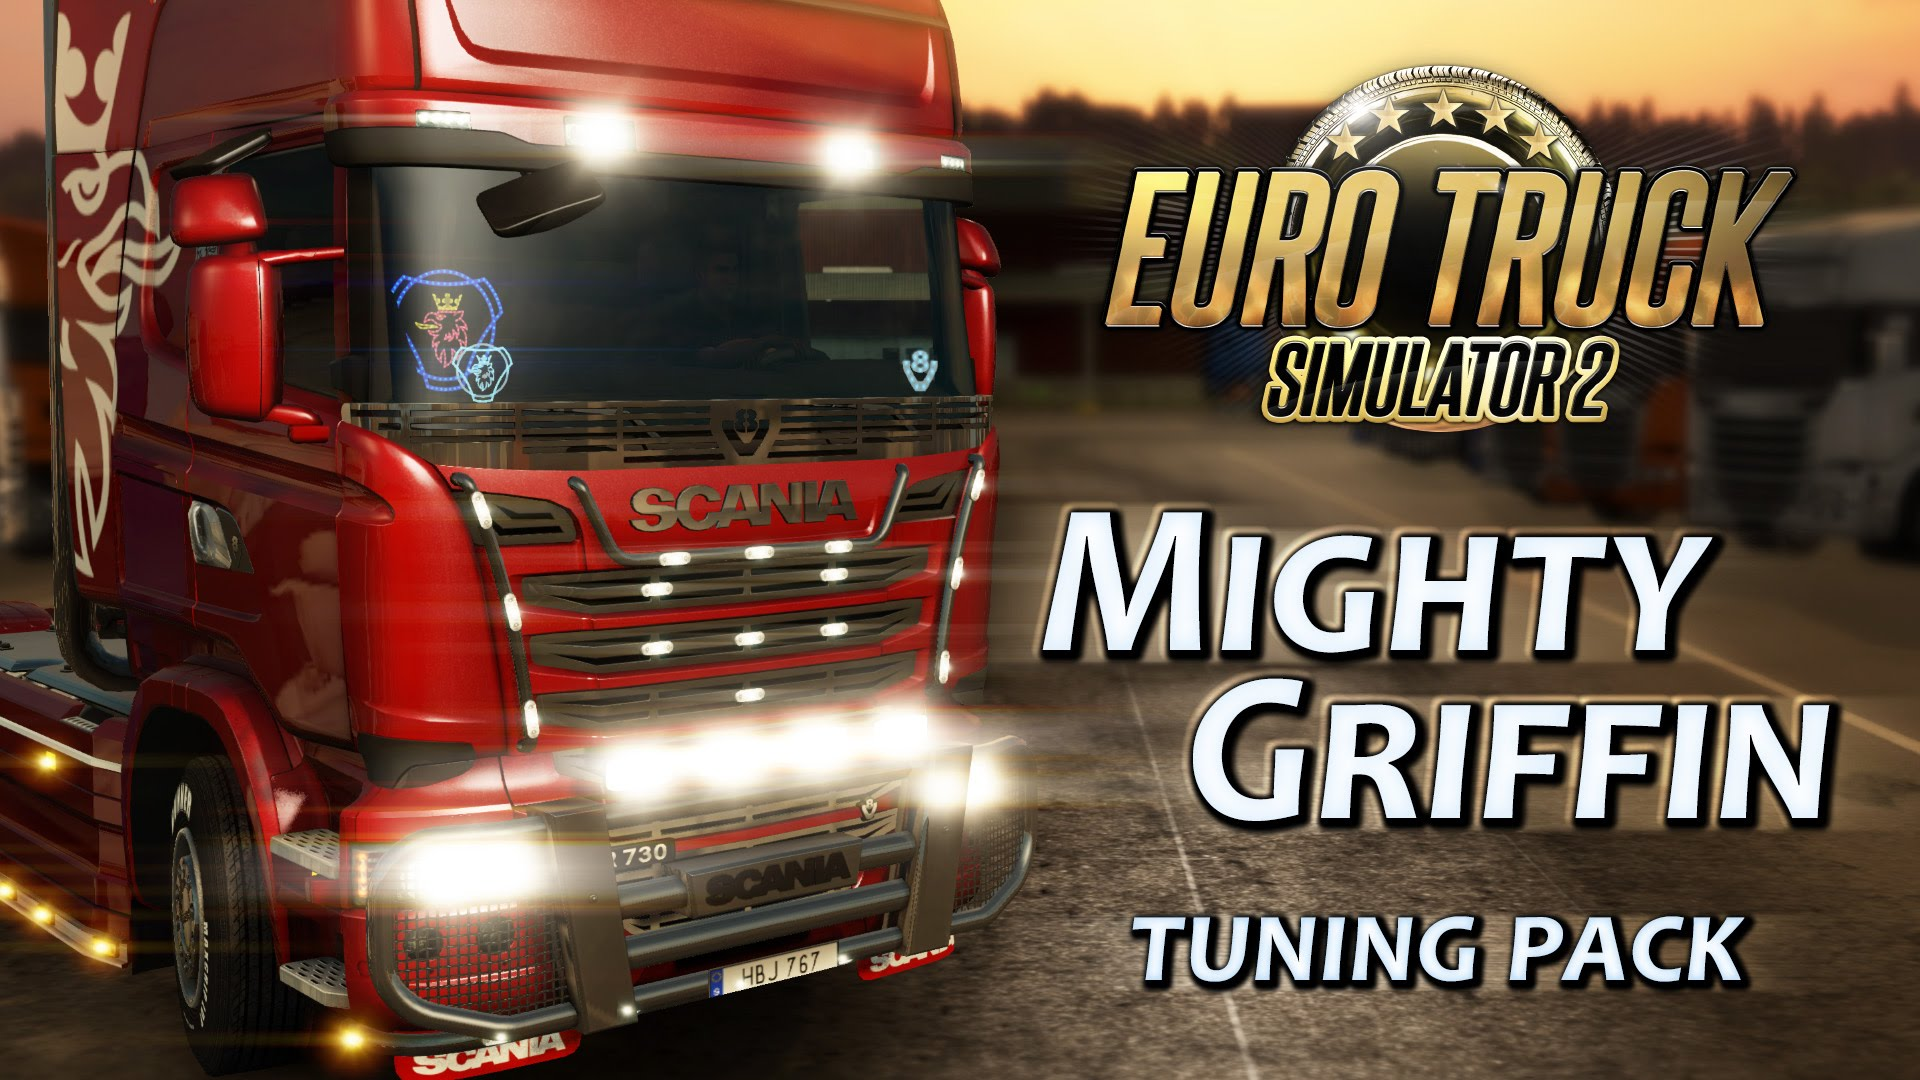 Download Mighty Griffin DLC Tuning Pack for ETS 2